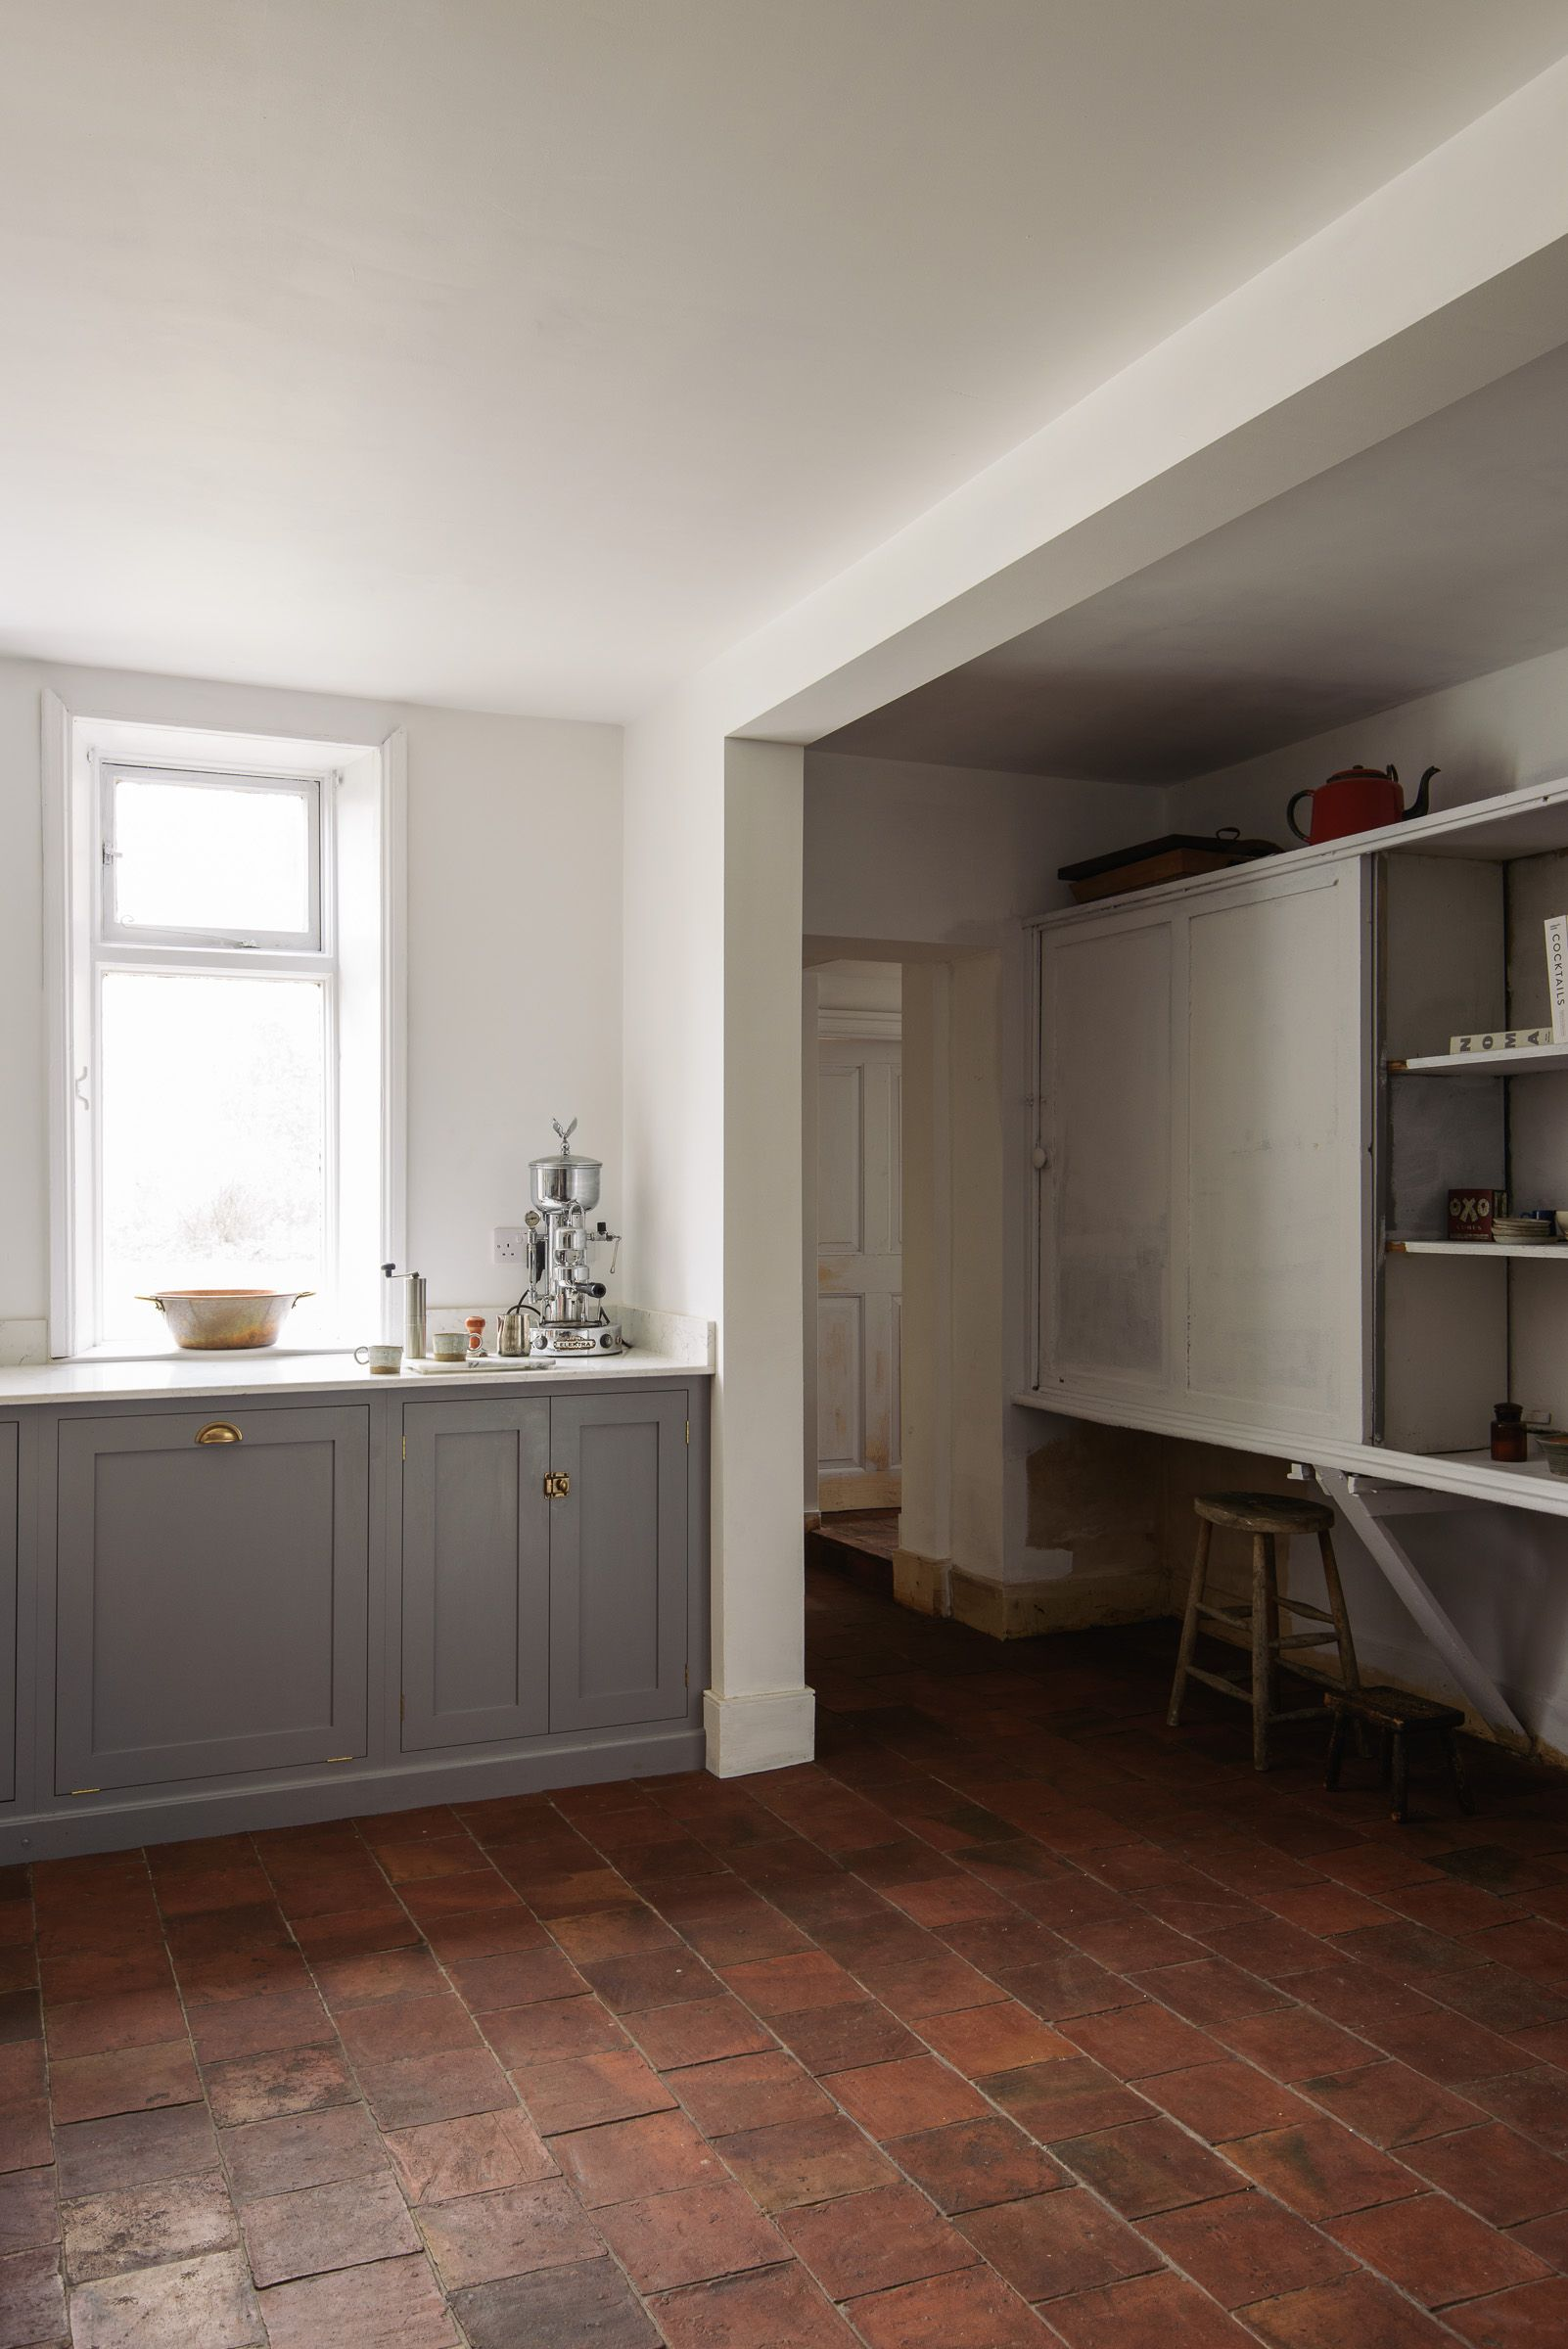 White Walls Grey Cupboards And Deep Quarry Tiles In Devol